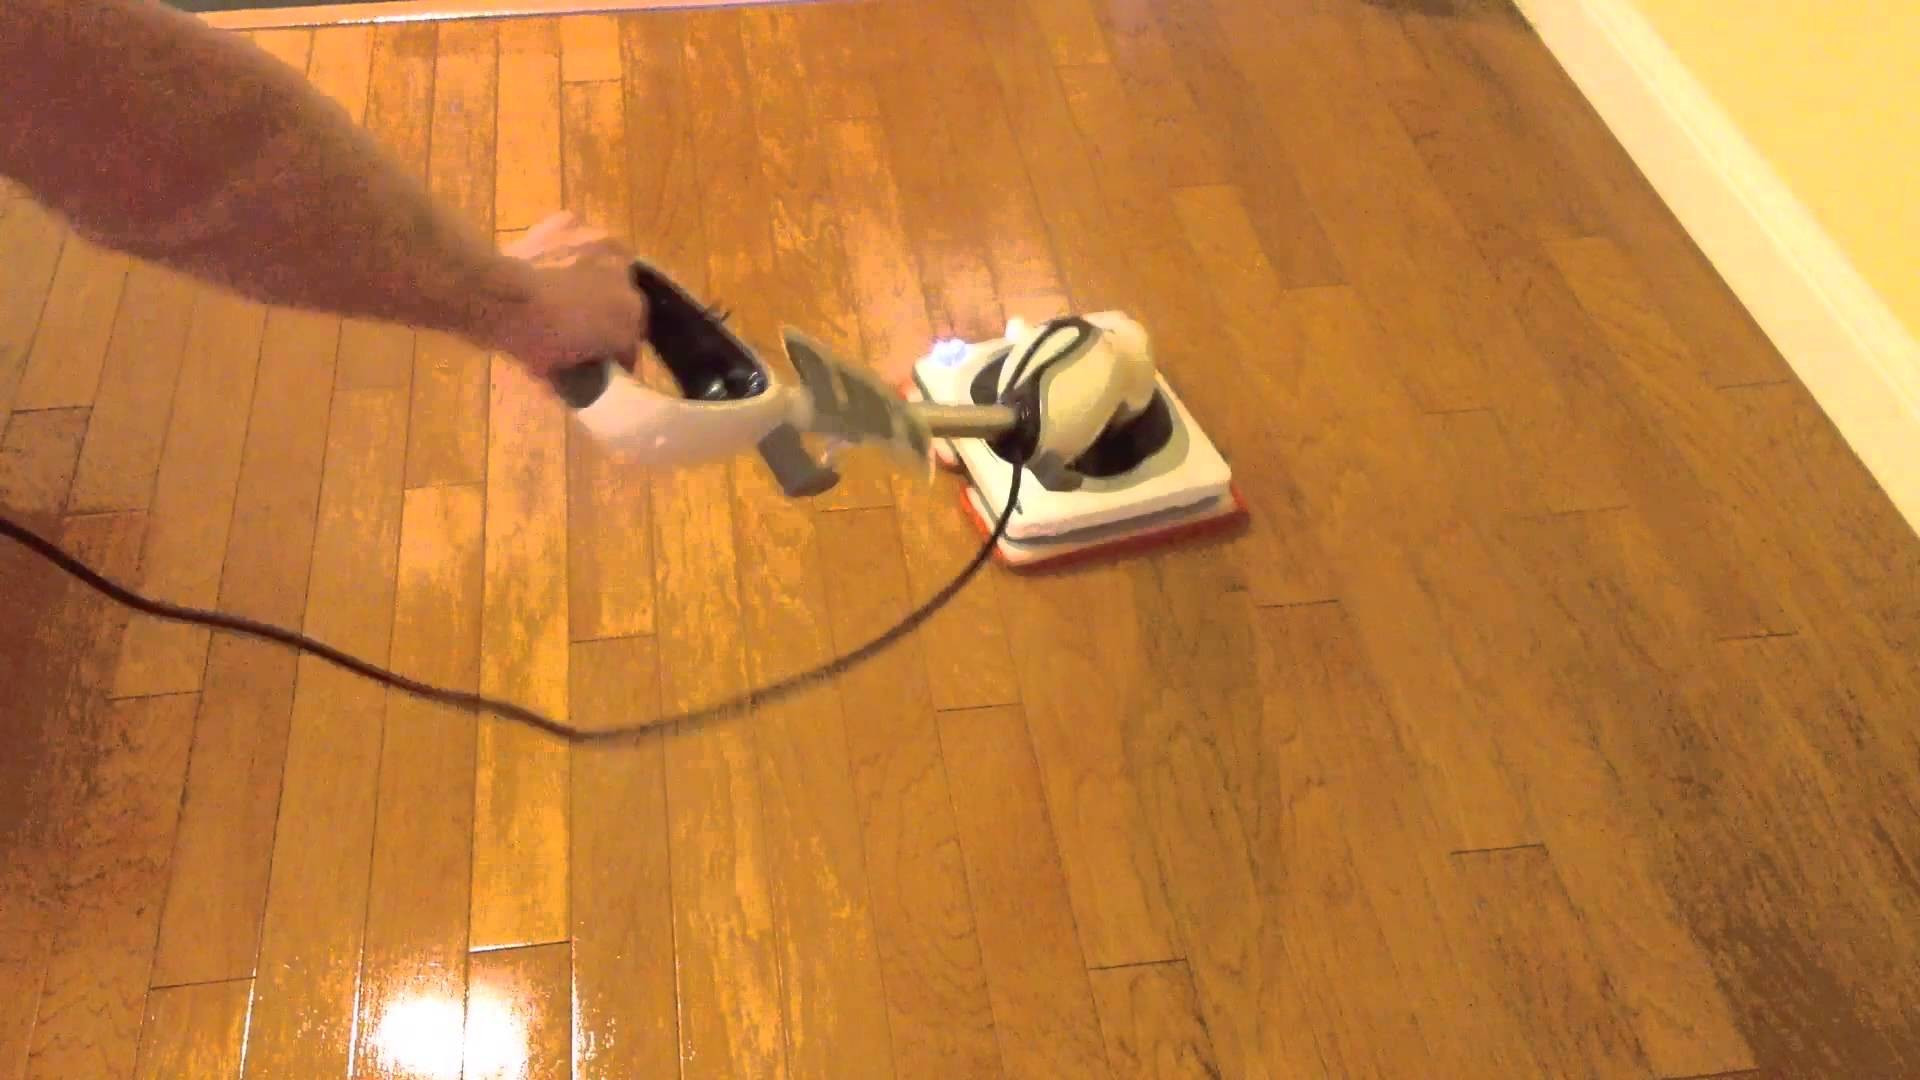 bona hardwood floor care system reviews of wood floor steam cleaner astonishing cleaning wooden floors on with maxresdefault shark sonic duo reviews for hardwood floors shark sonic duo cleaner